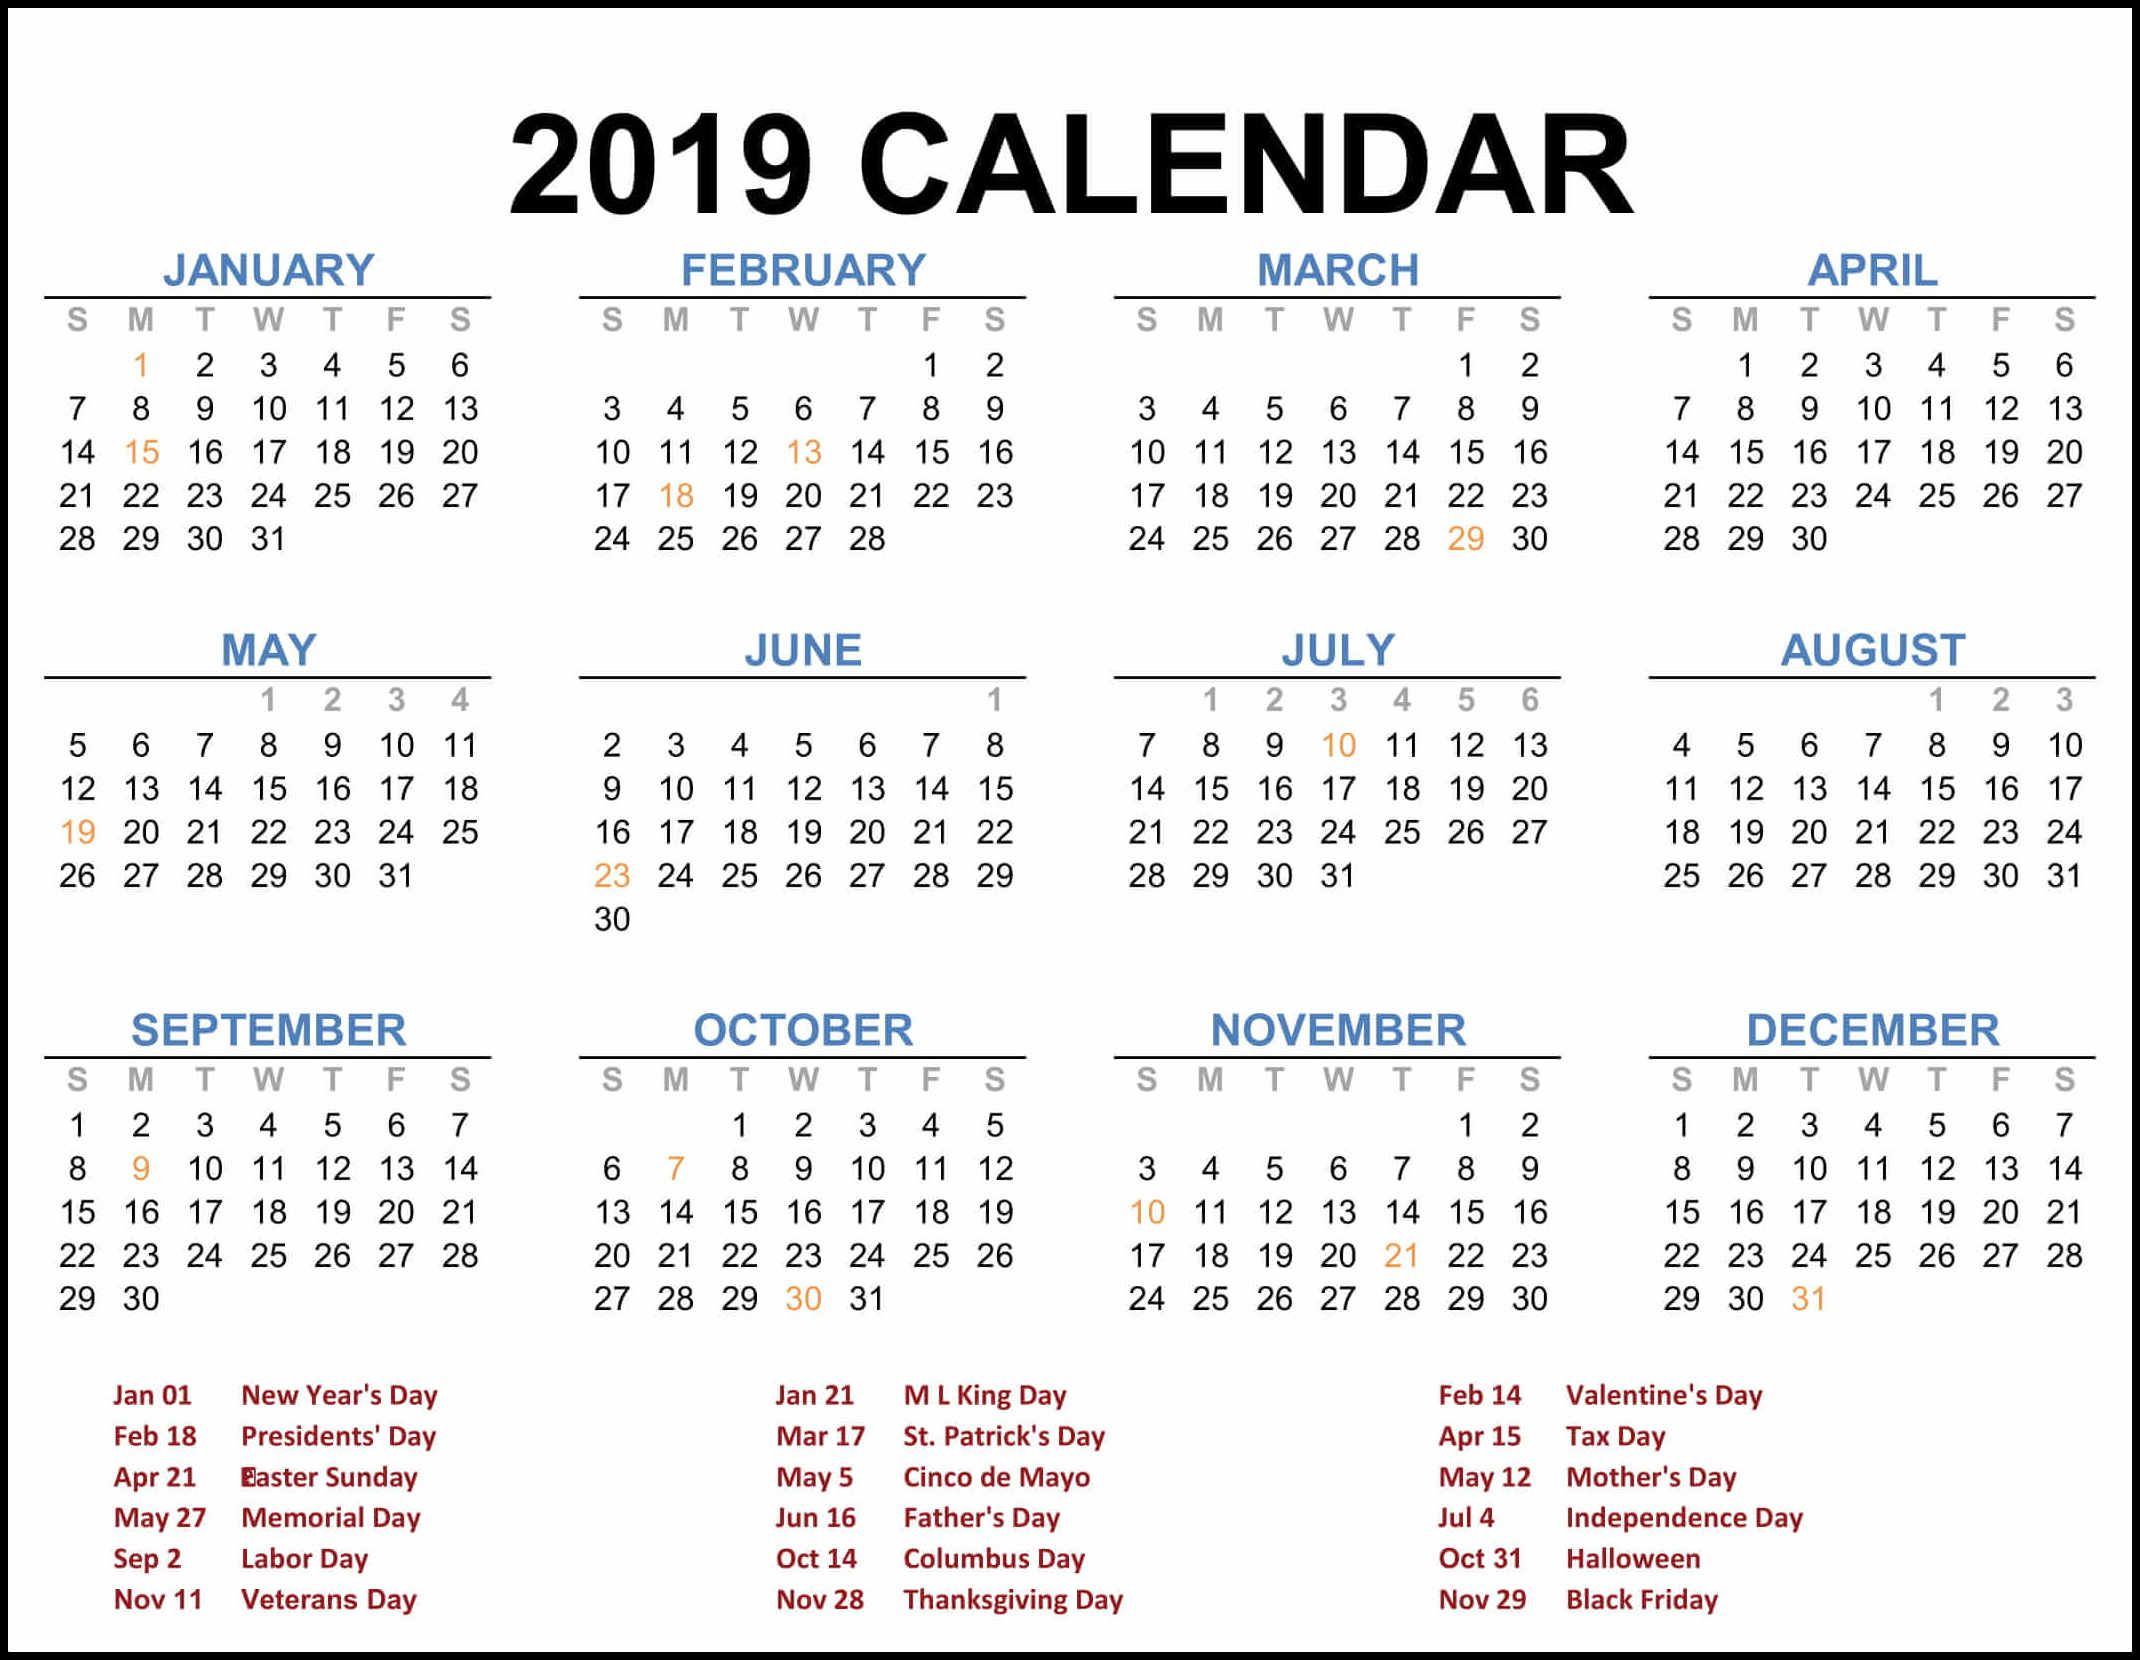 2019 federal holiday calendar  calendar2019